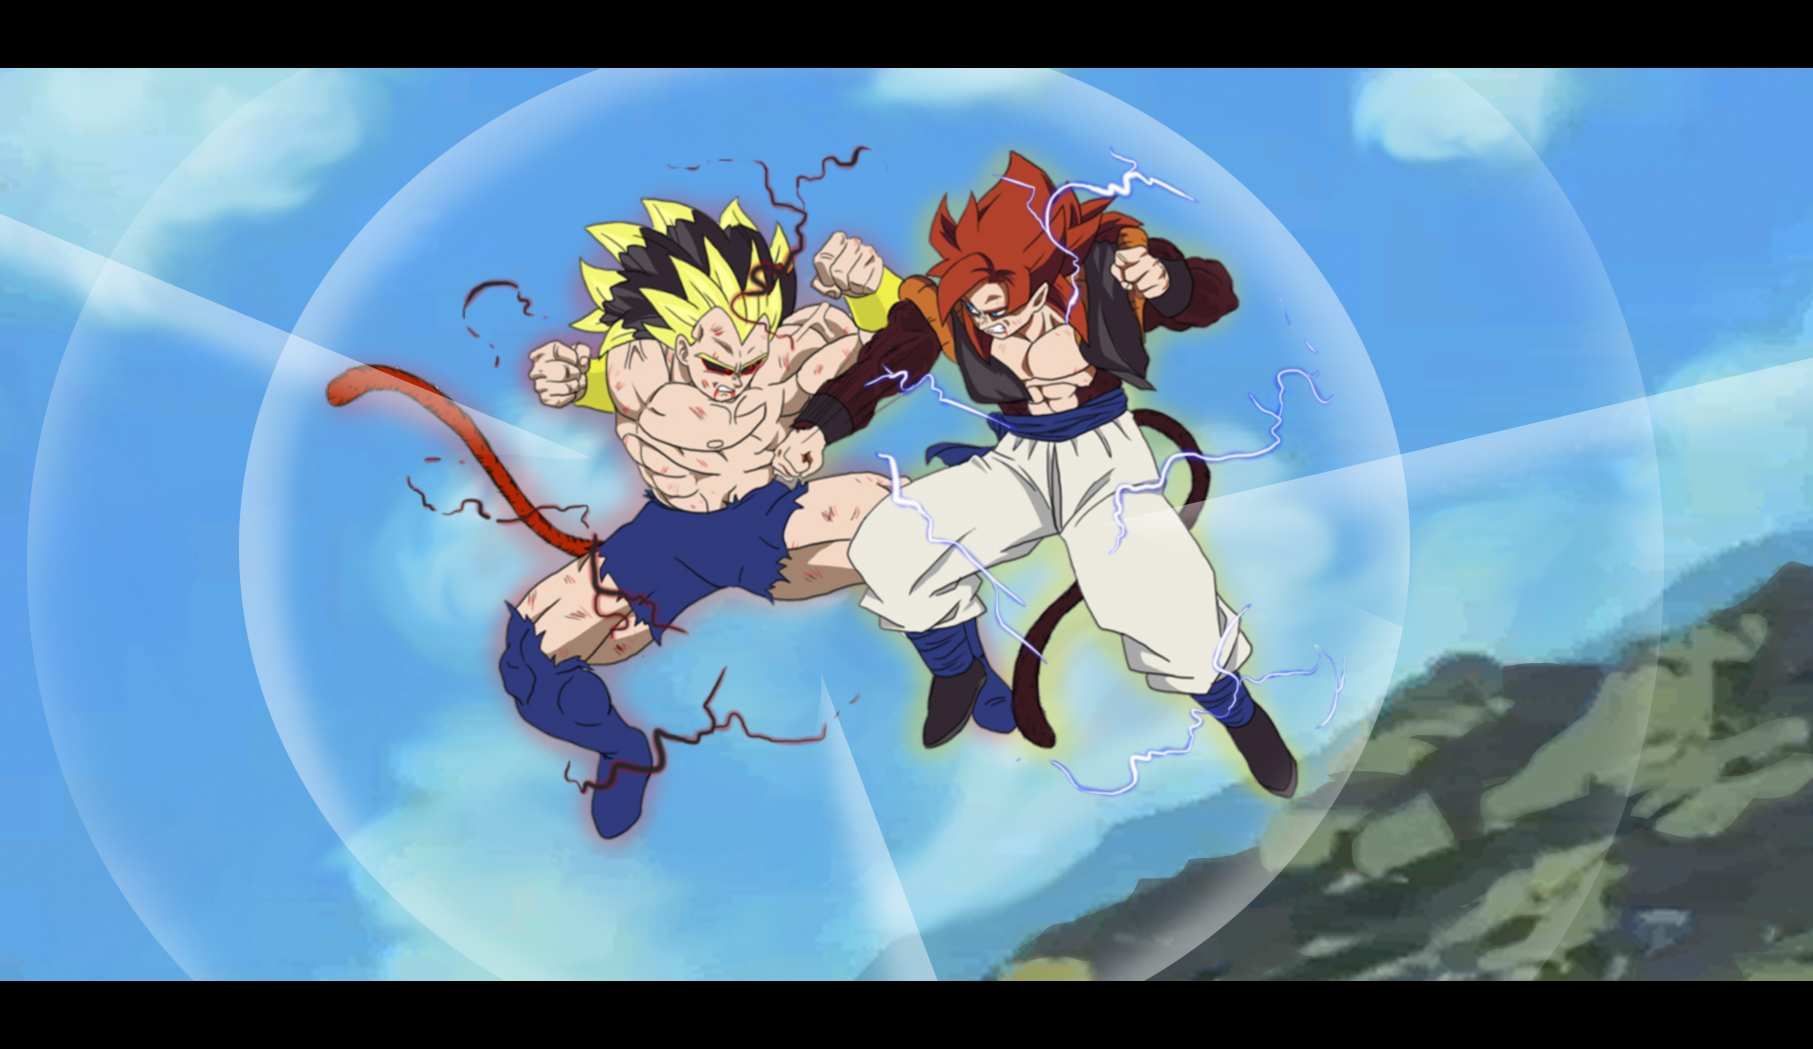 Rigor vs Gogeta - Final Battle Screenshot by MalikStudios